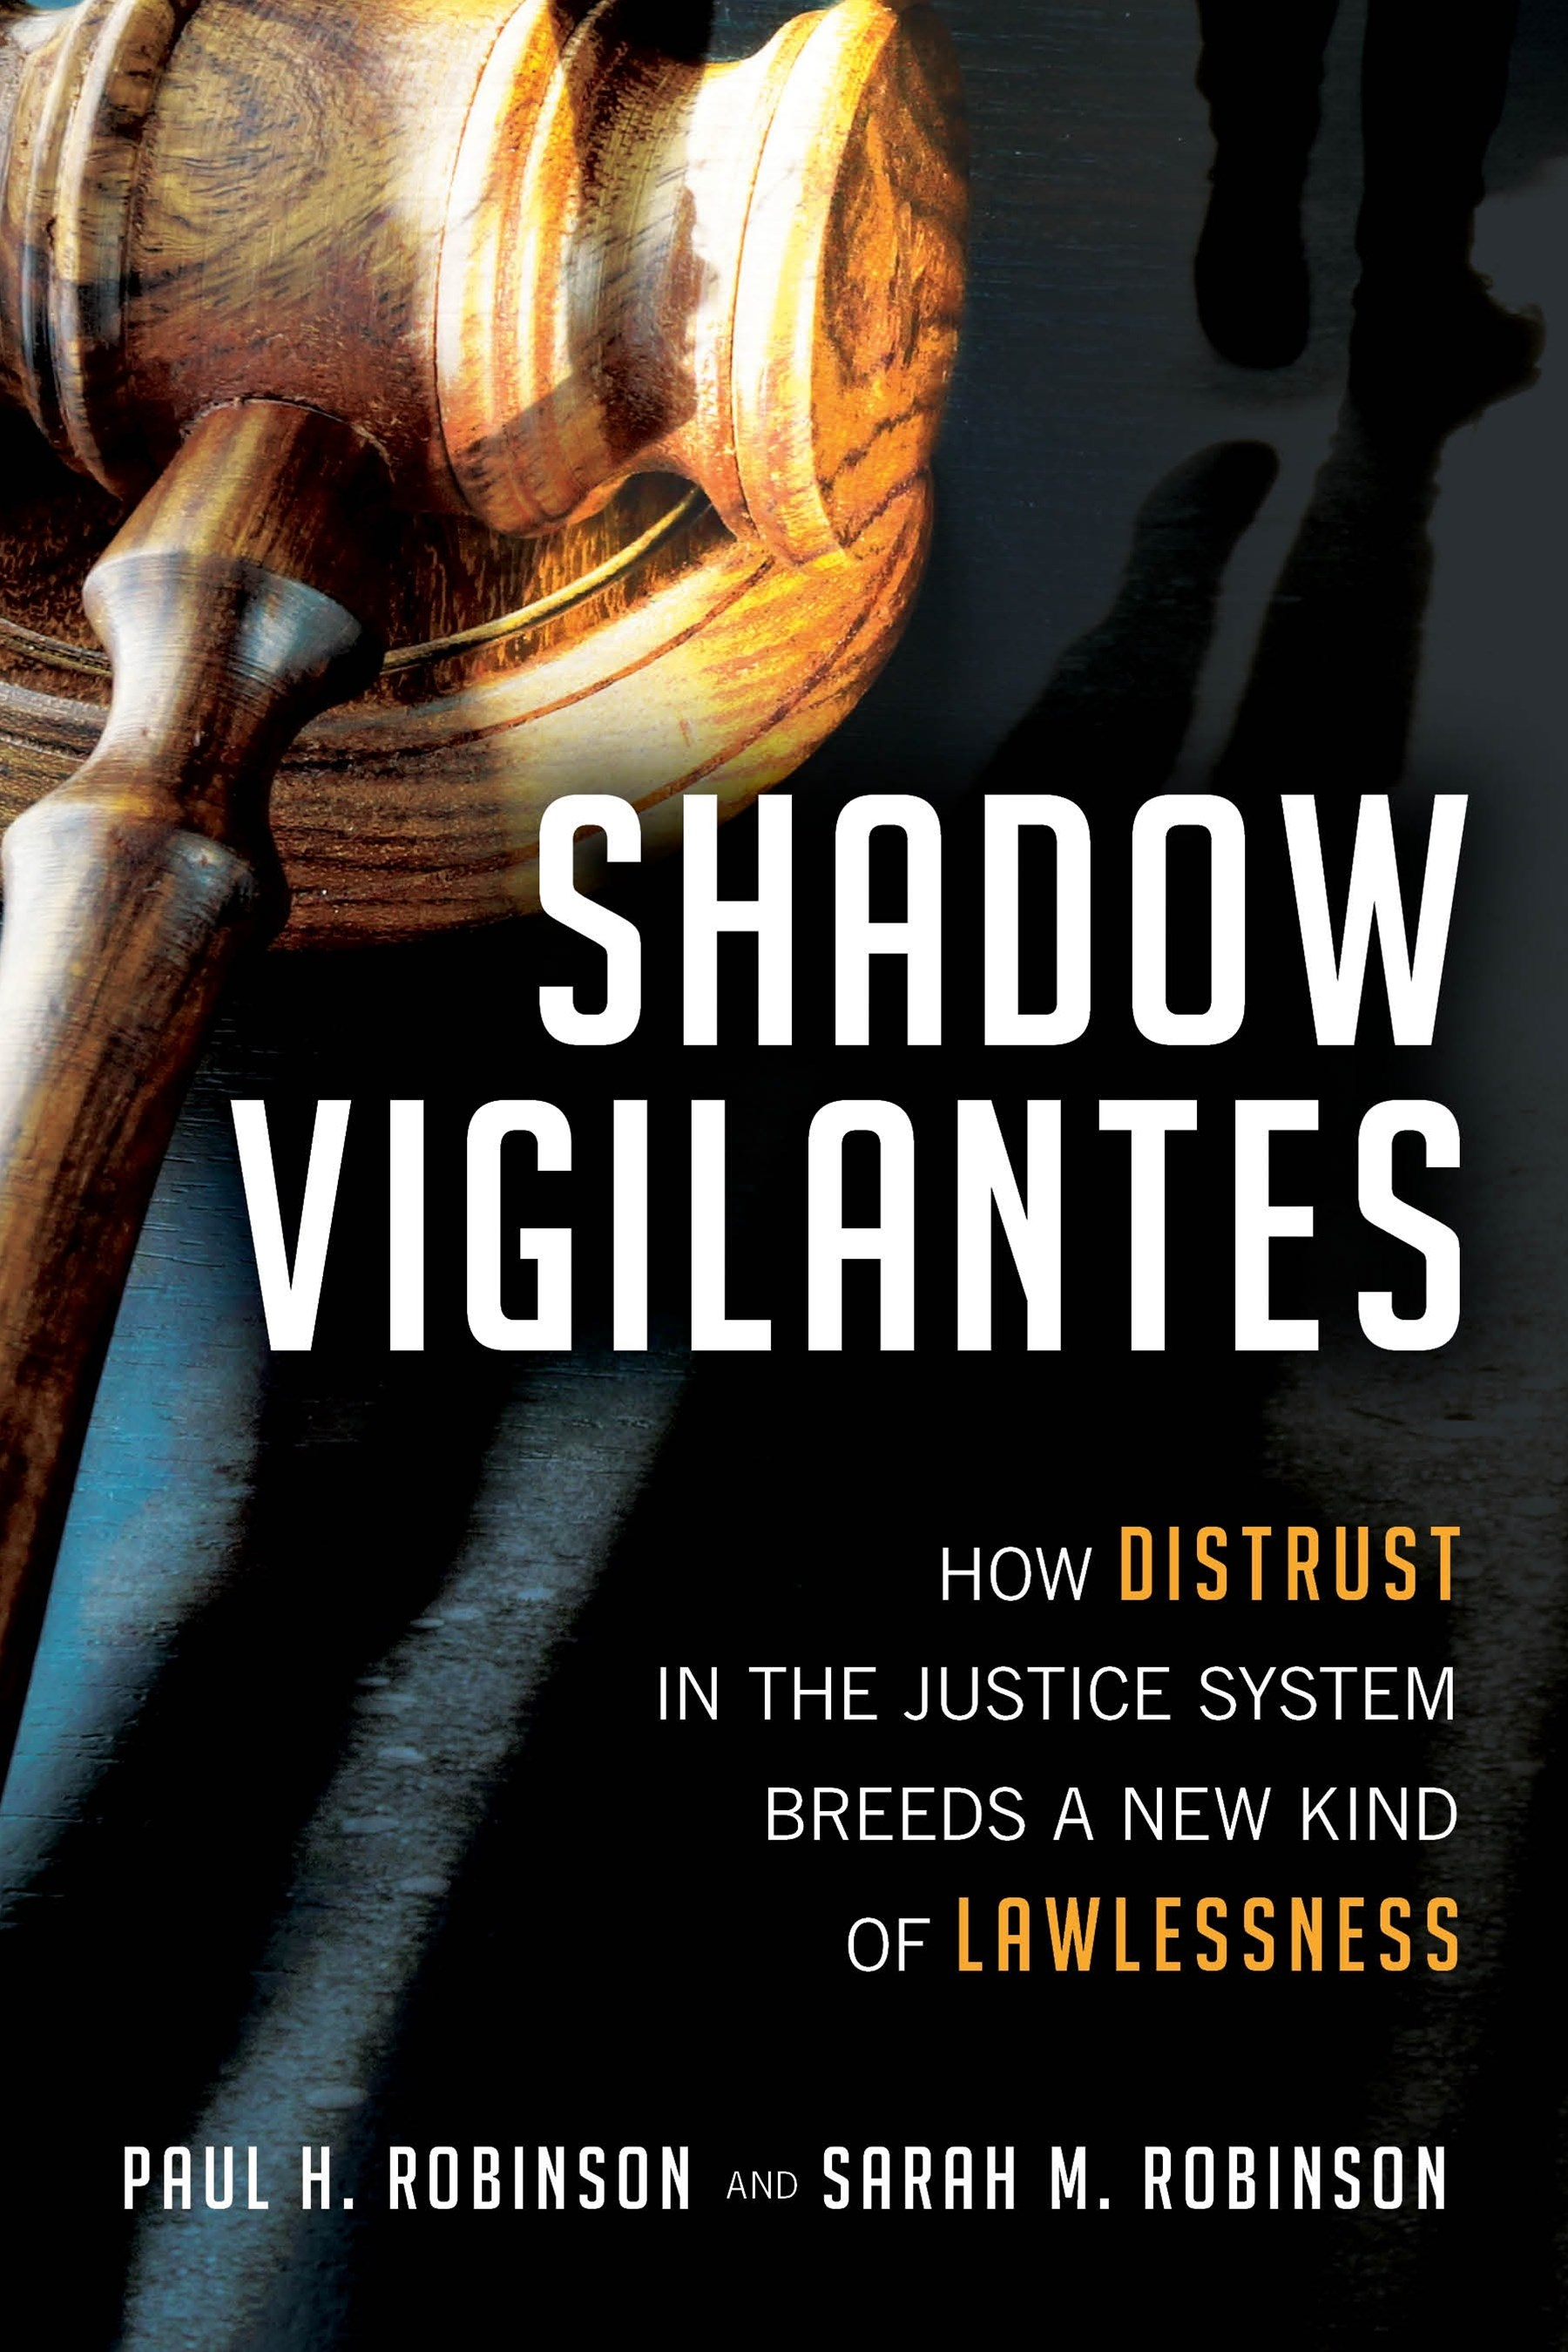 Shadow Vigilantes: How Distrust in the Justice System Breeds a New Kind of Lawlessness